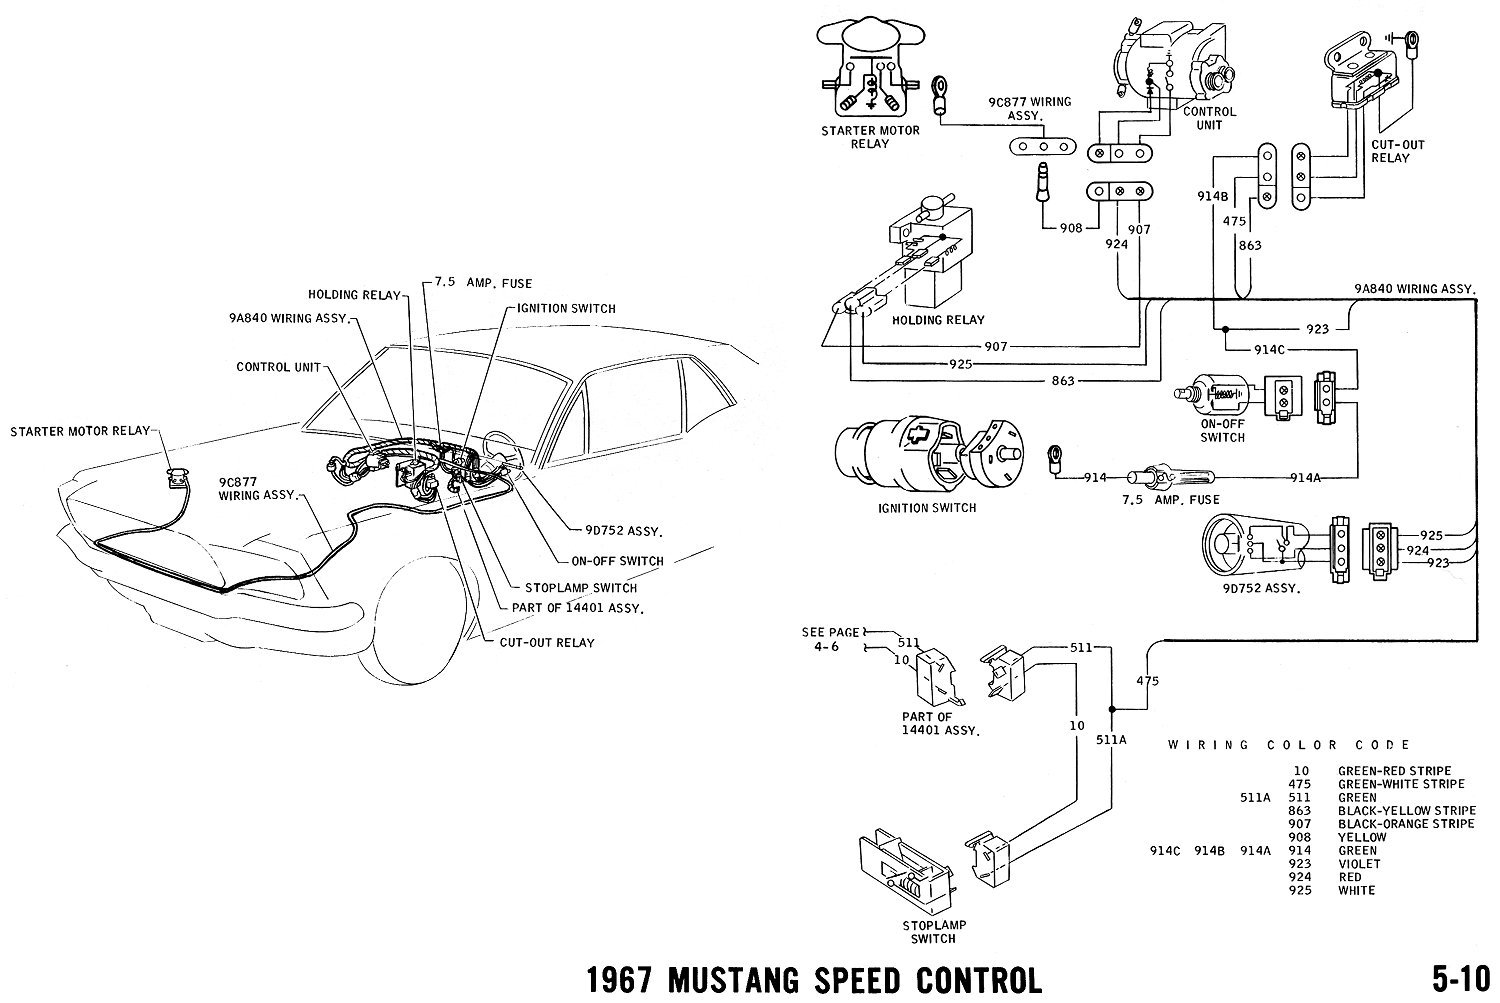 1961 Cadillac Wiring Diagram Data Diagrams 1970 67 Mustang Under Dash Harness Free Engine 1964